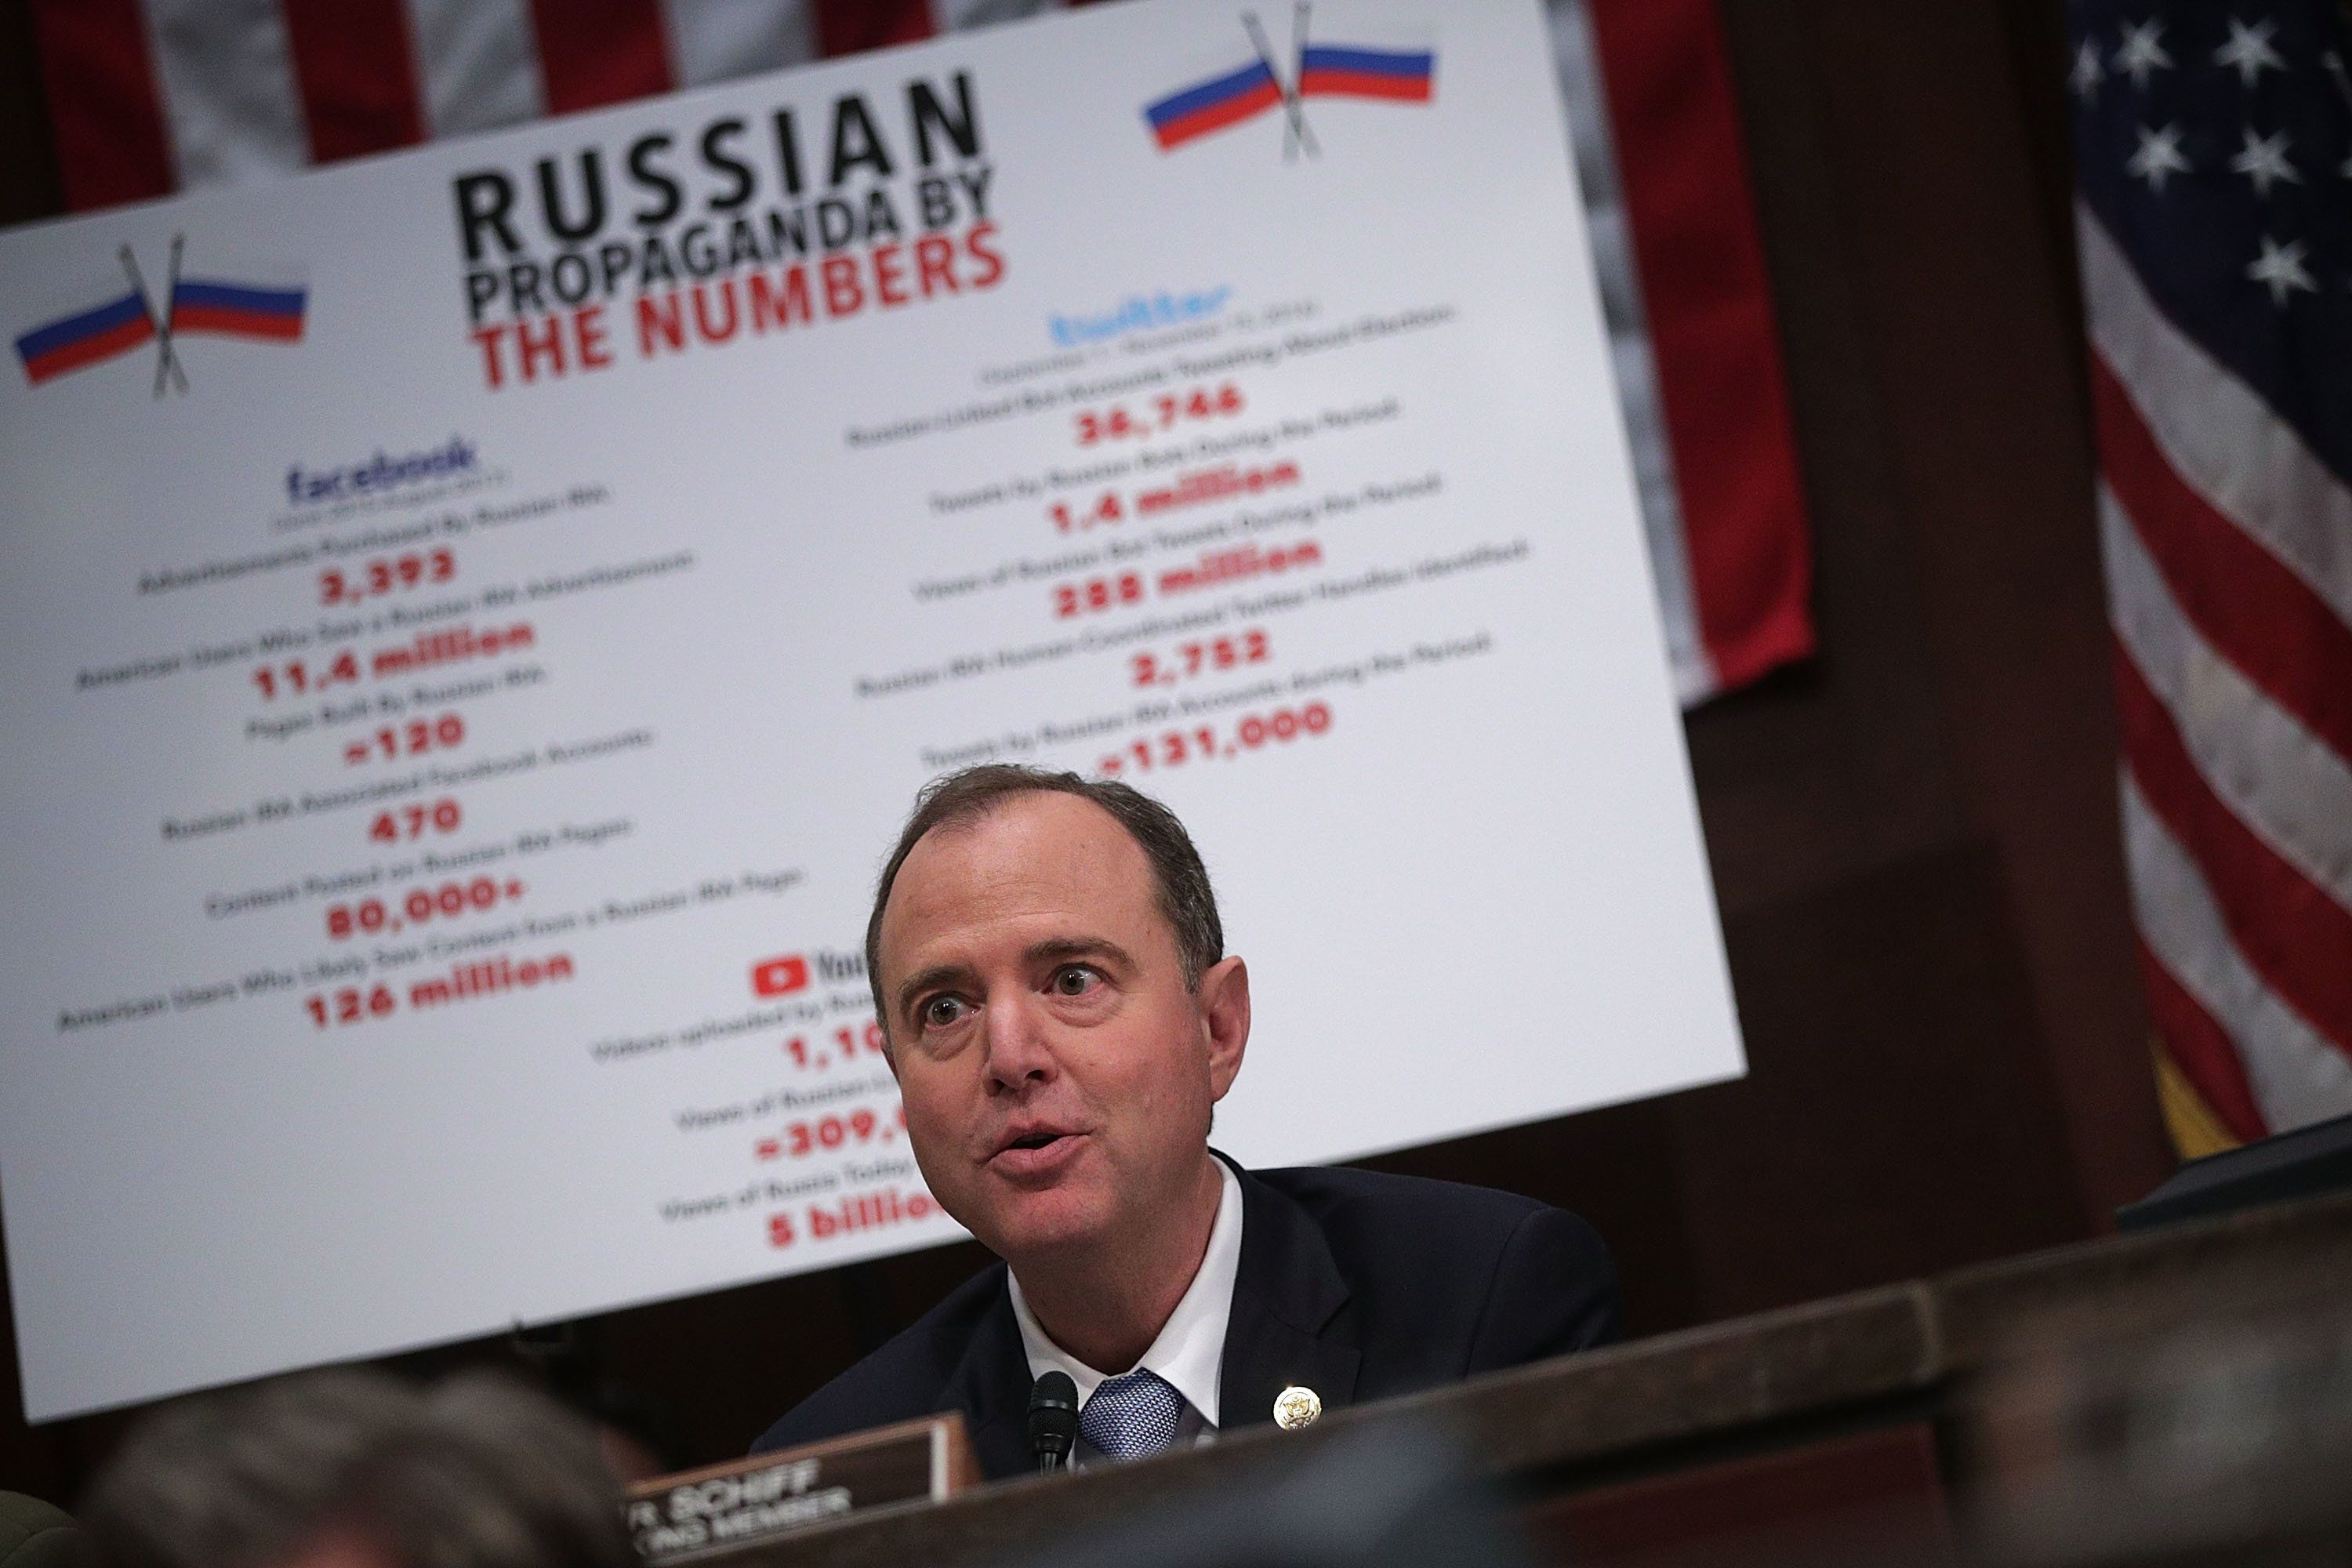 Russia Investigation: Republicans 'Aggressively' Trying to Shutdown Mueller Probe, Schiff Says